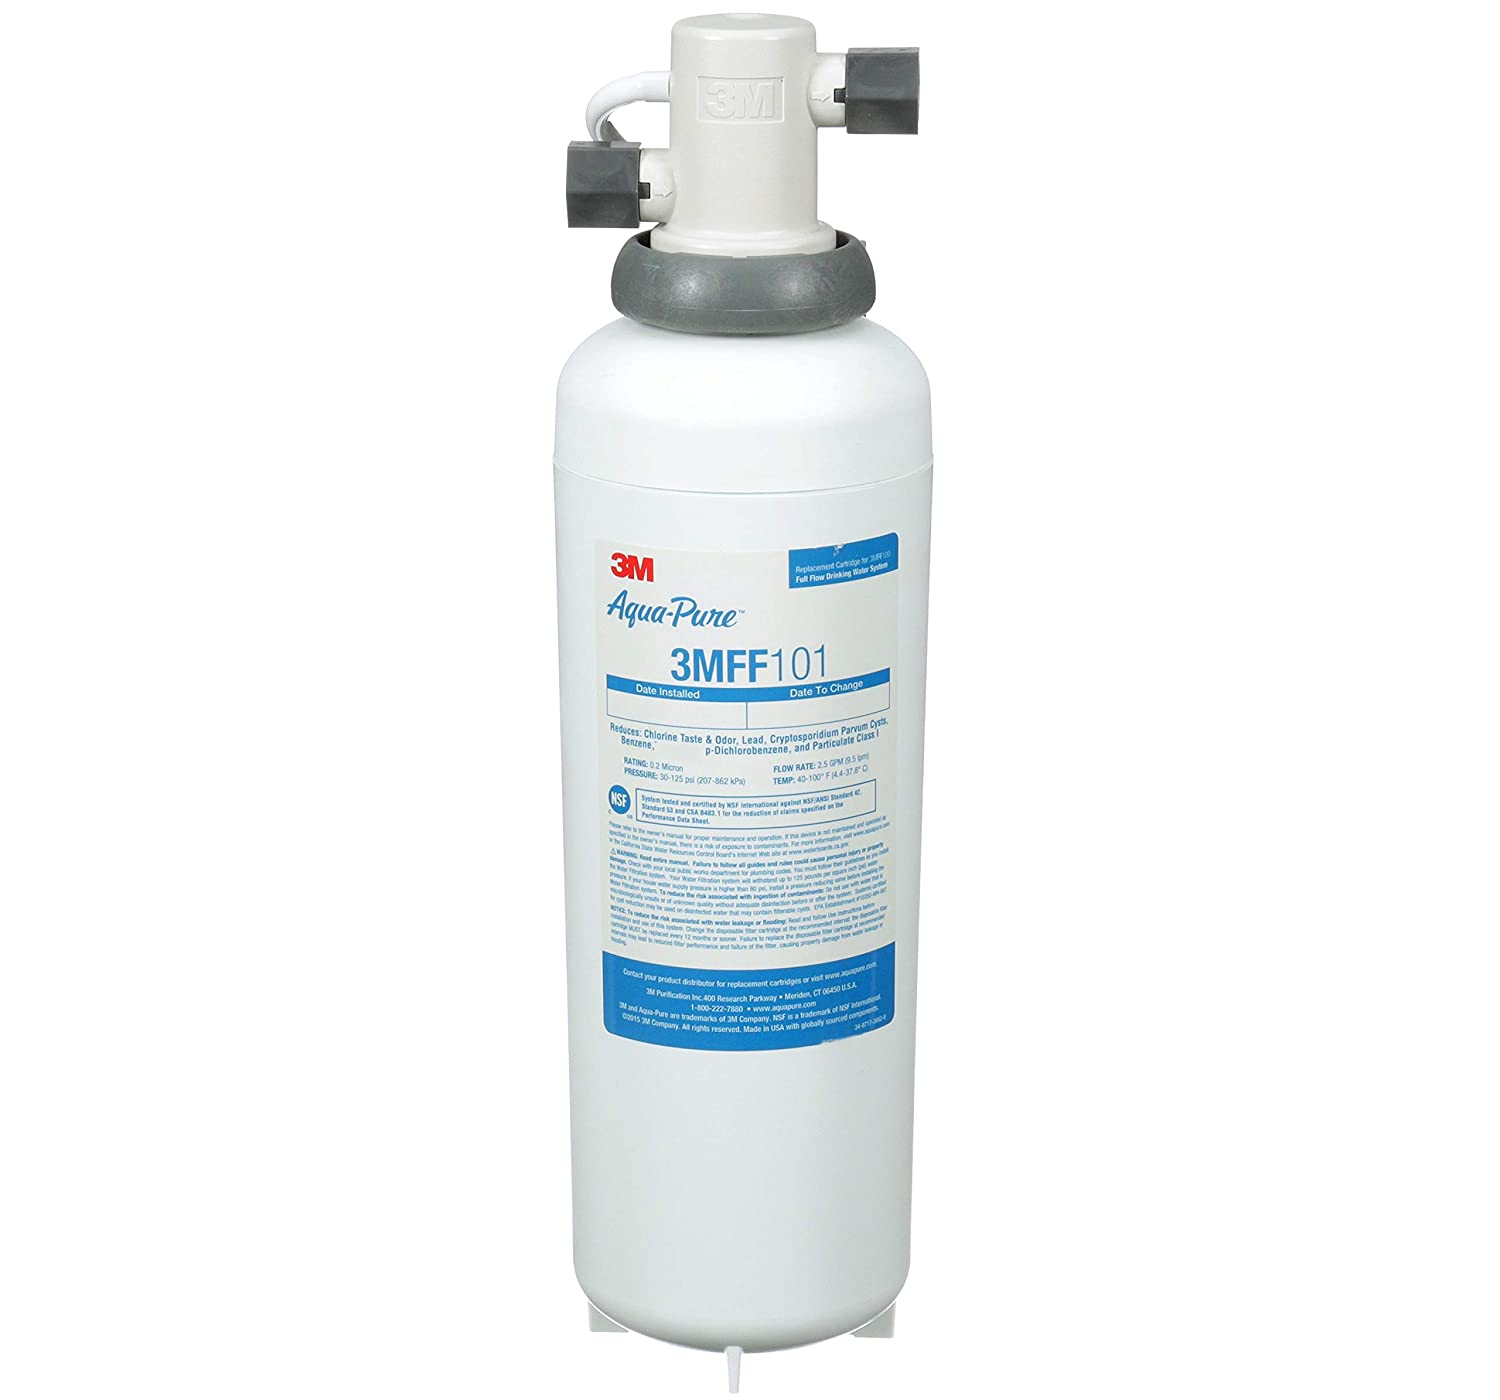 3M Aqua-Pure 3MFF100 Under Sink Water Filter Reviews